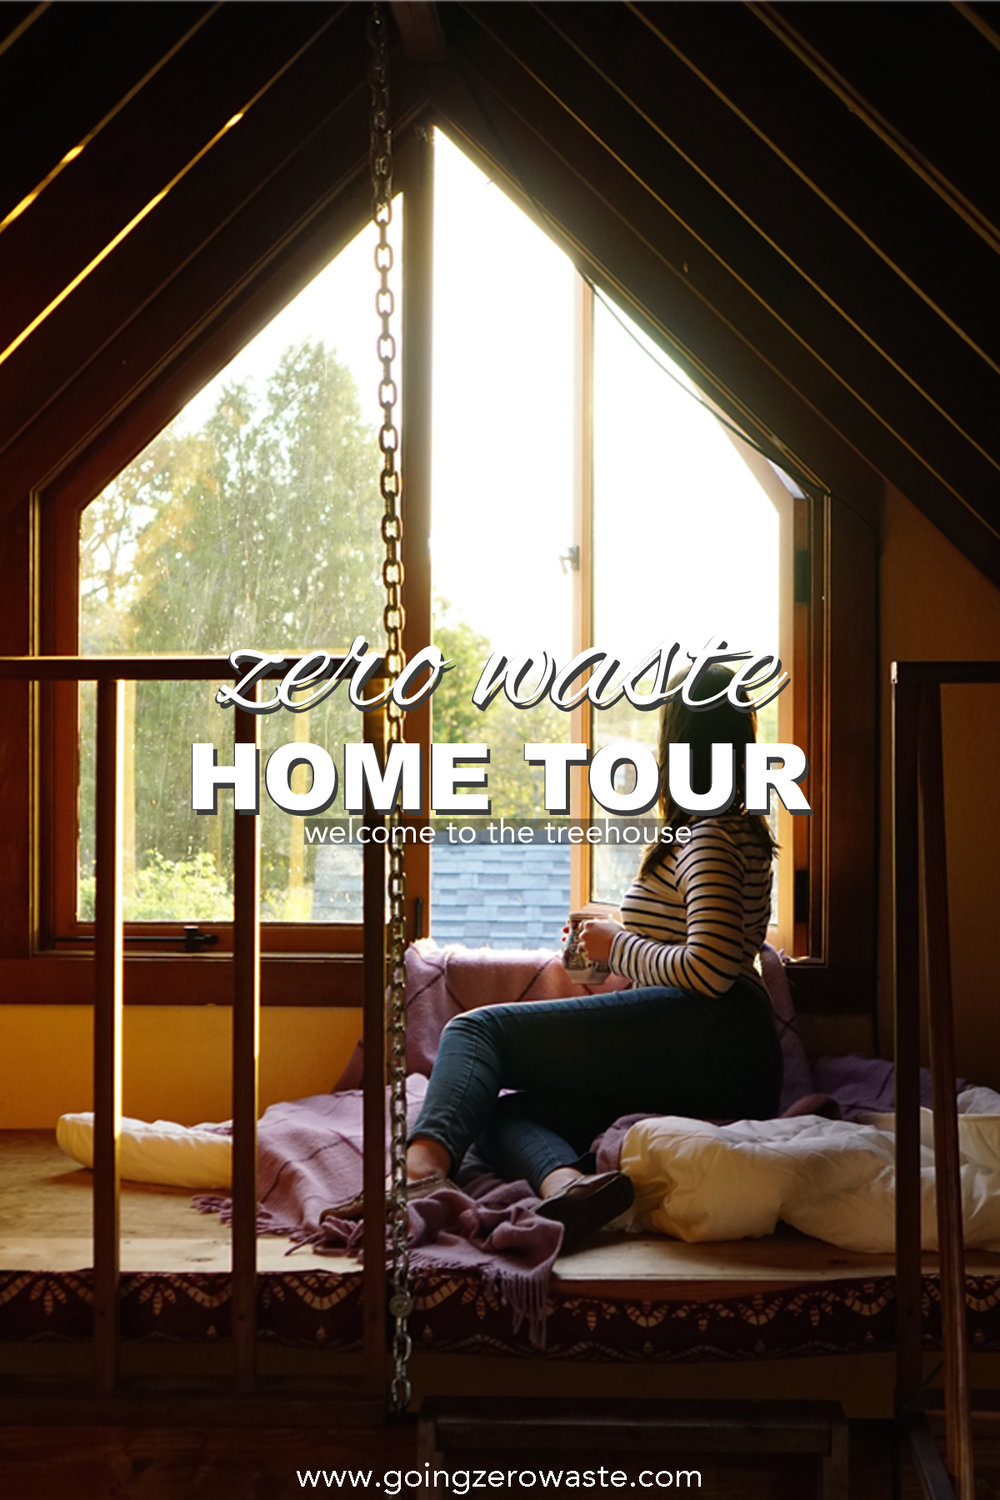 Zero waste home tour - treehouse edition from www.goingzerowaste.com #zerowaste